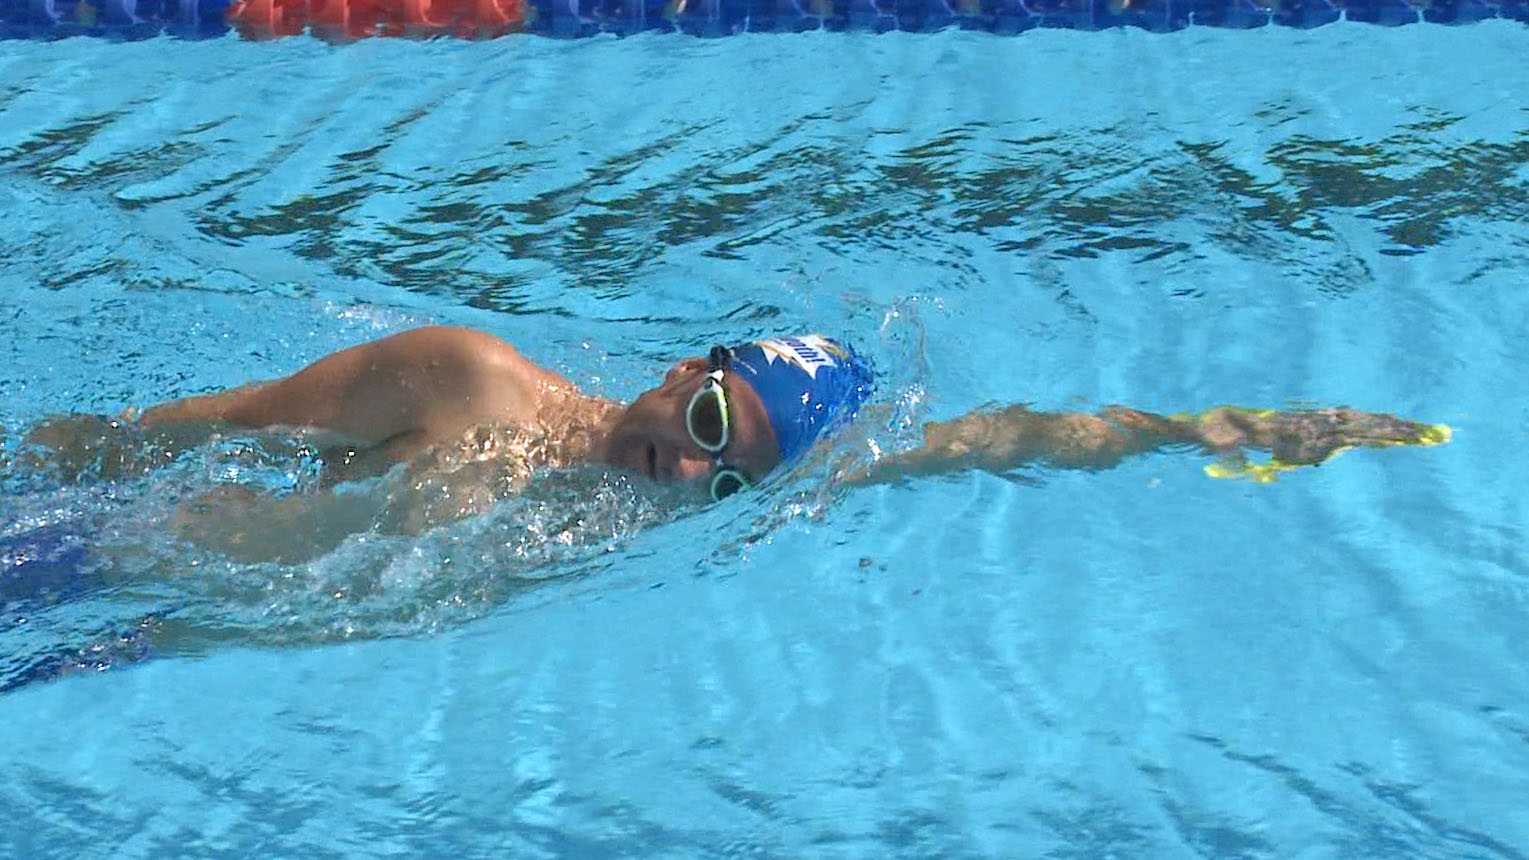 Discussion on this topic: Swimming laps involves kicking only from the , swimming-laps-involves-kicking-only-from-the/